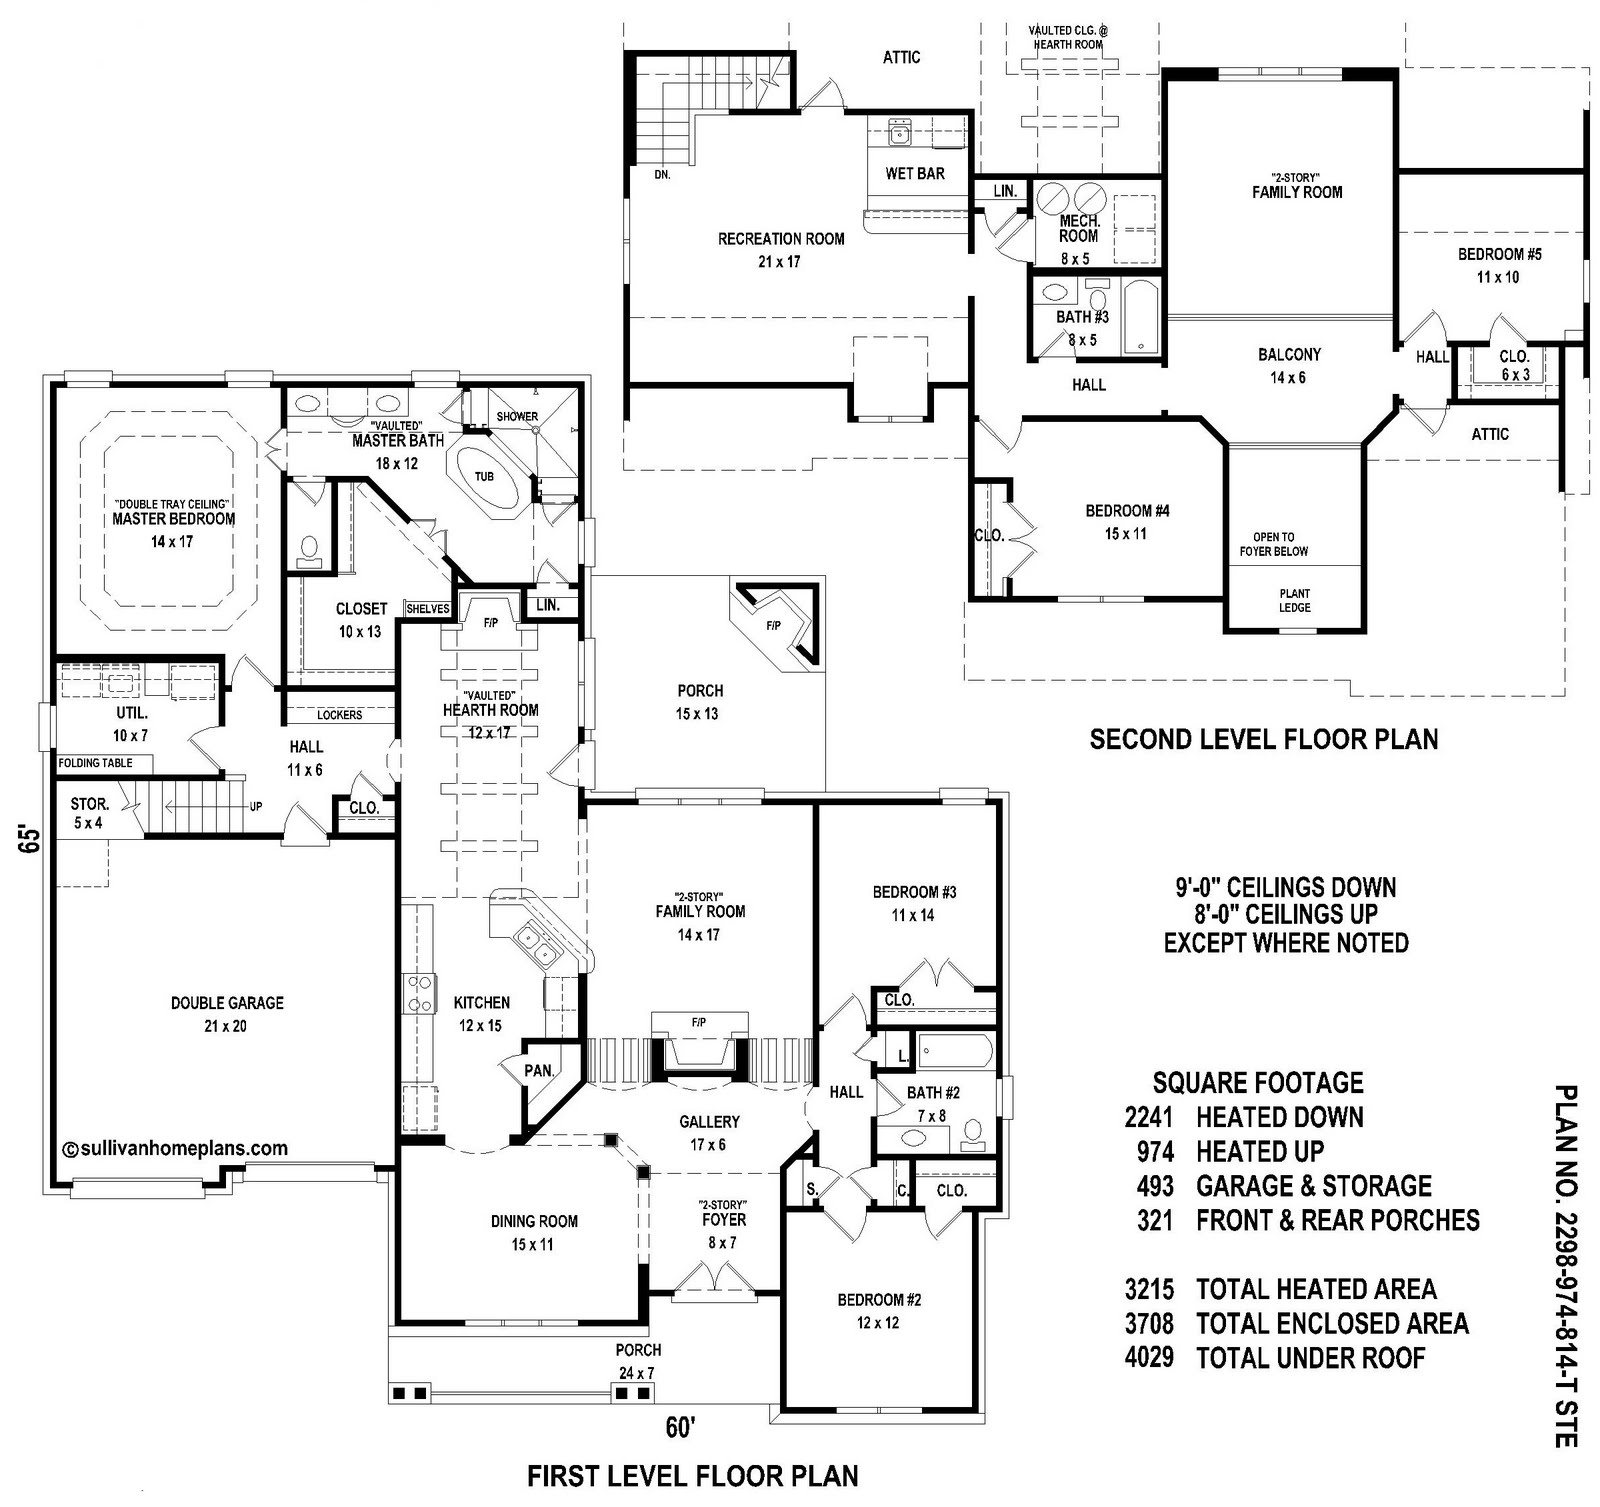 Sullivan home plans june 2010 for 5 bedroom floor plans